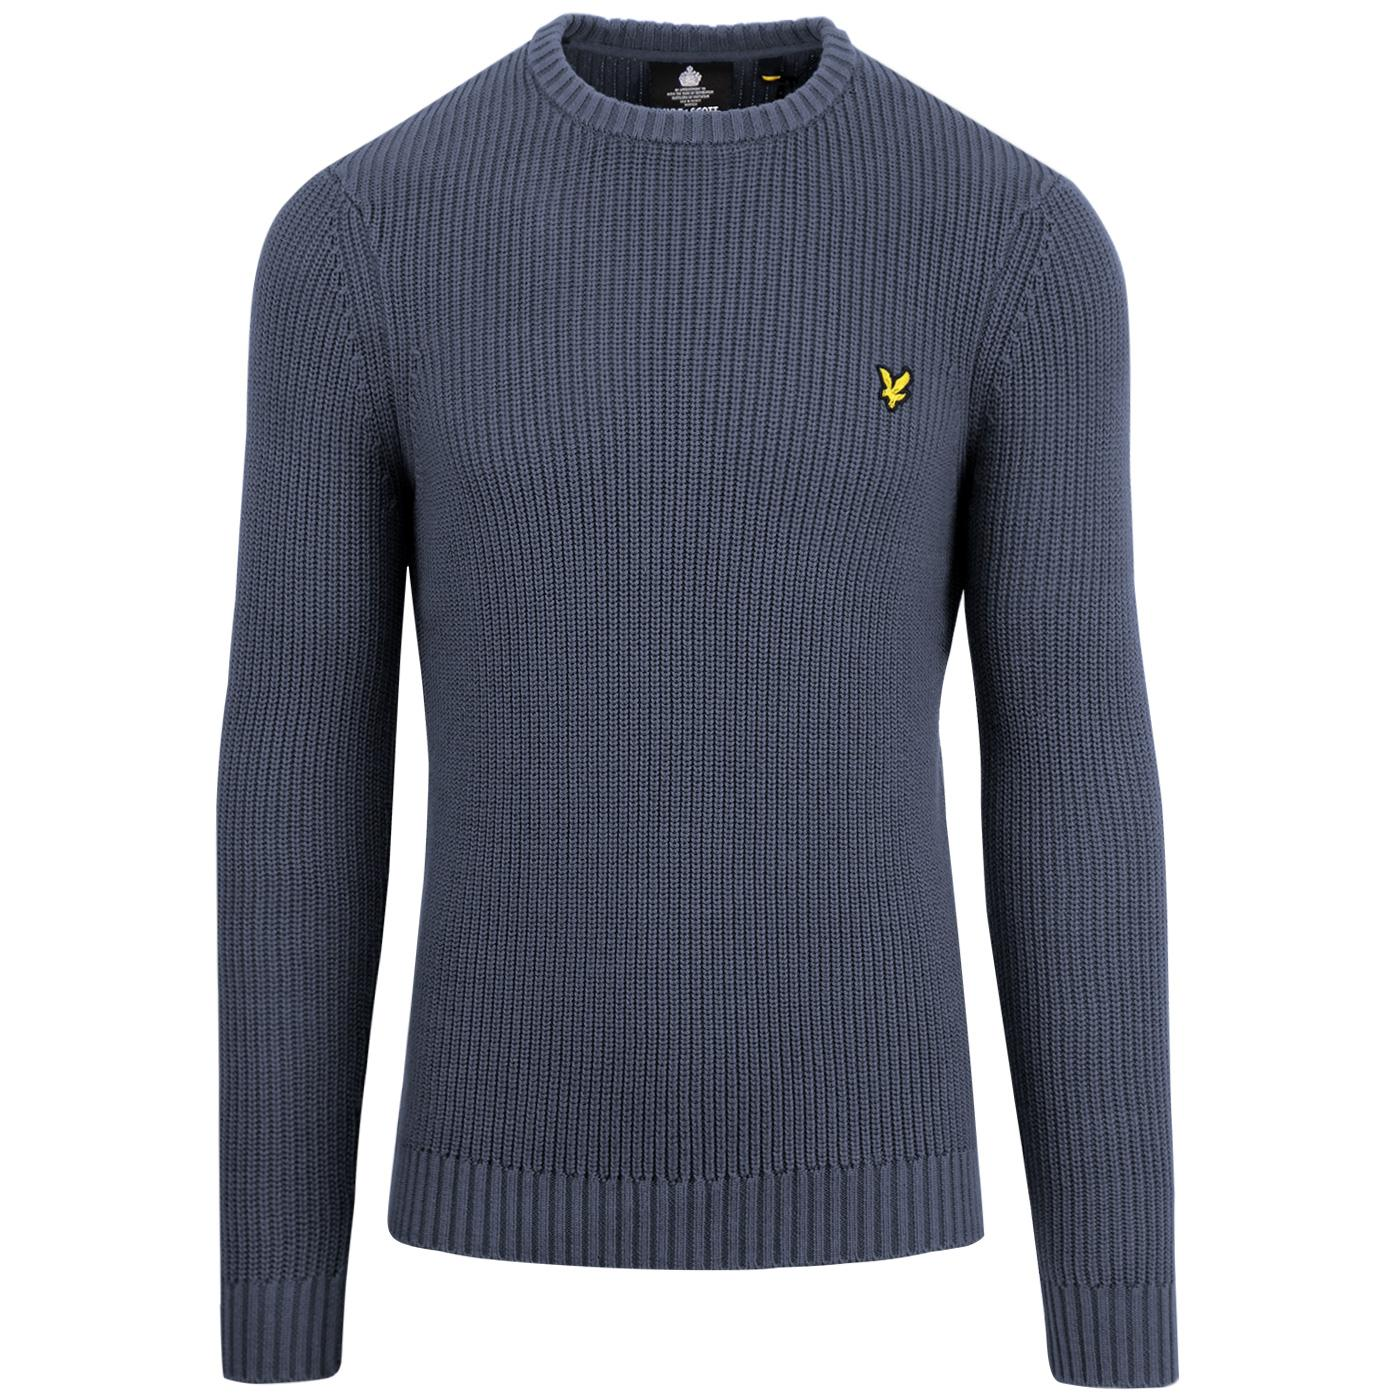 LYLE & SCOTT Retro Knitted Fisherman Rib Jumper